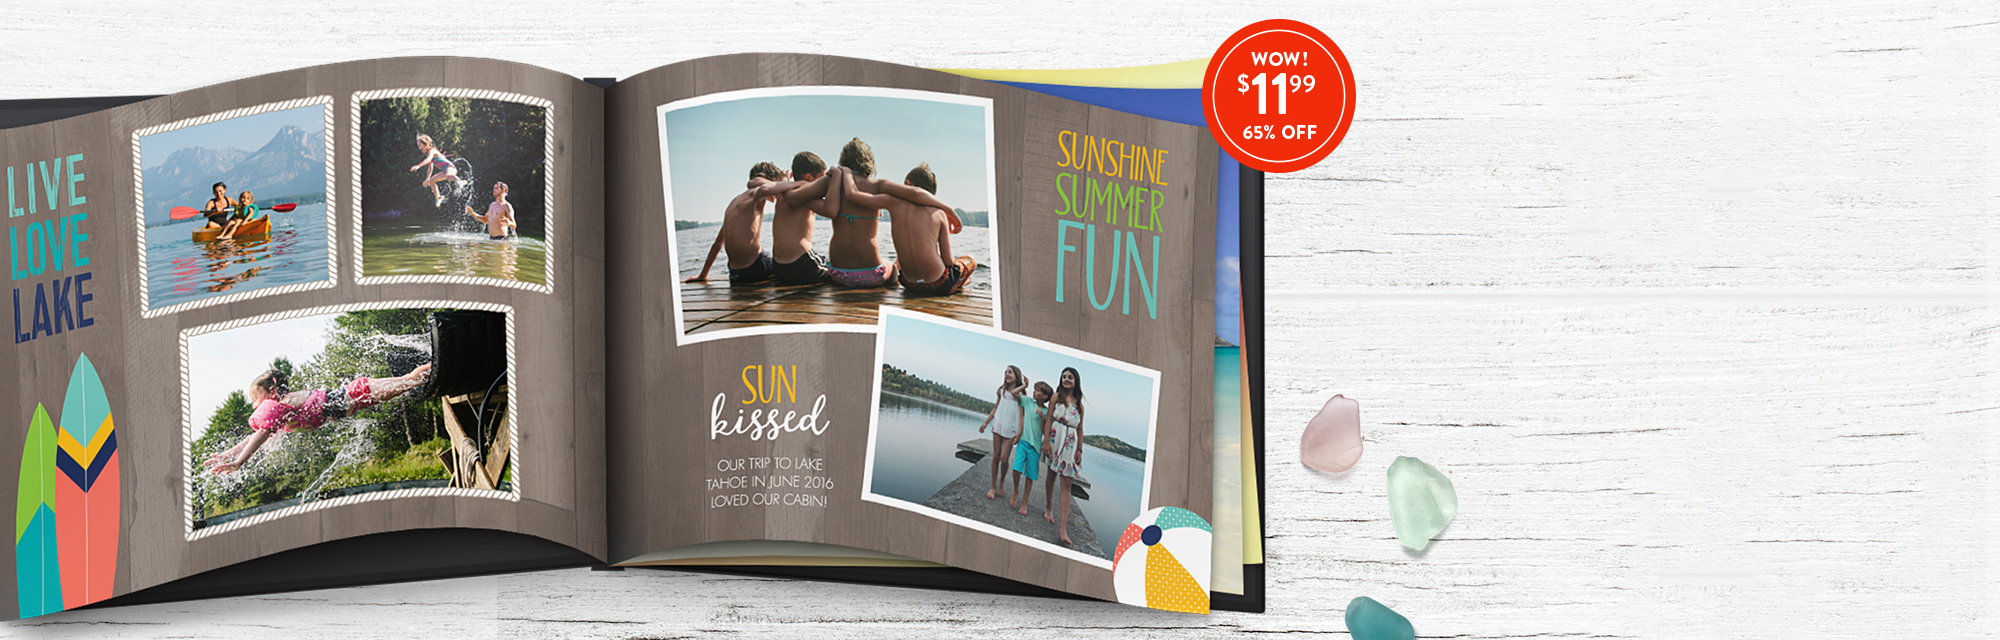 Soak up all your summer fun : An 8x11 Hardcover Photo Book makes a great catch. Use 1199BKS